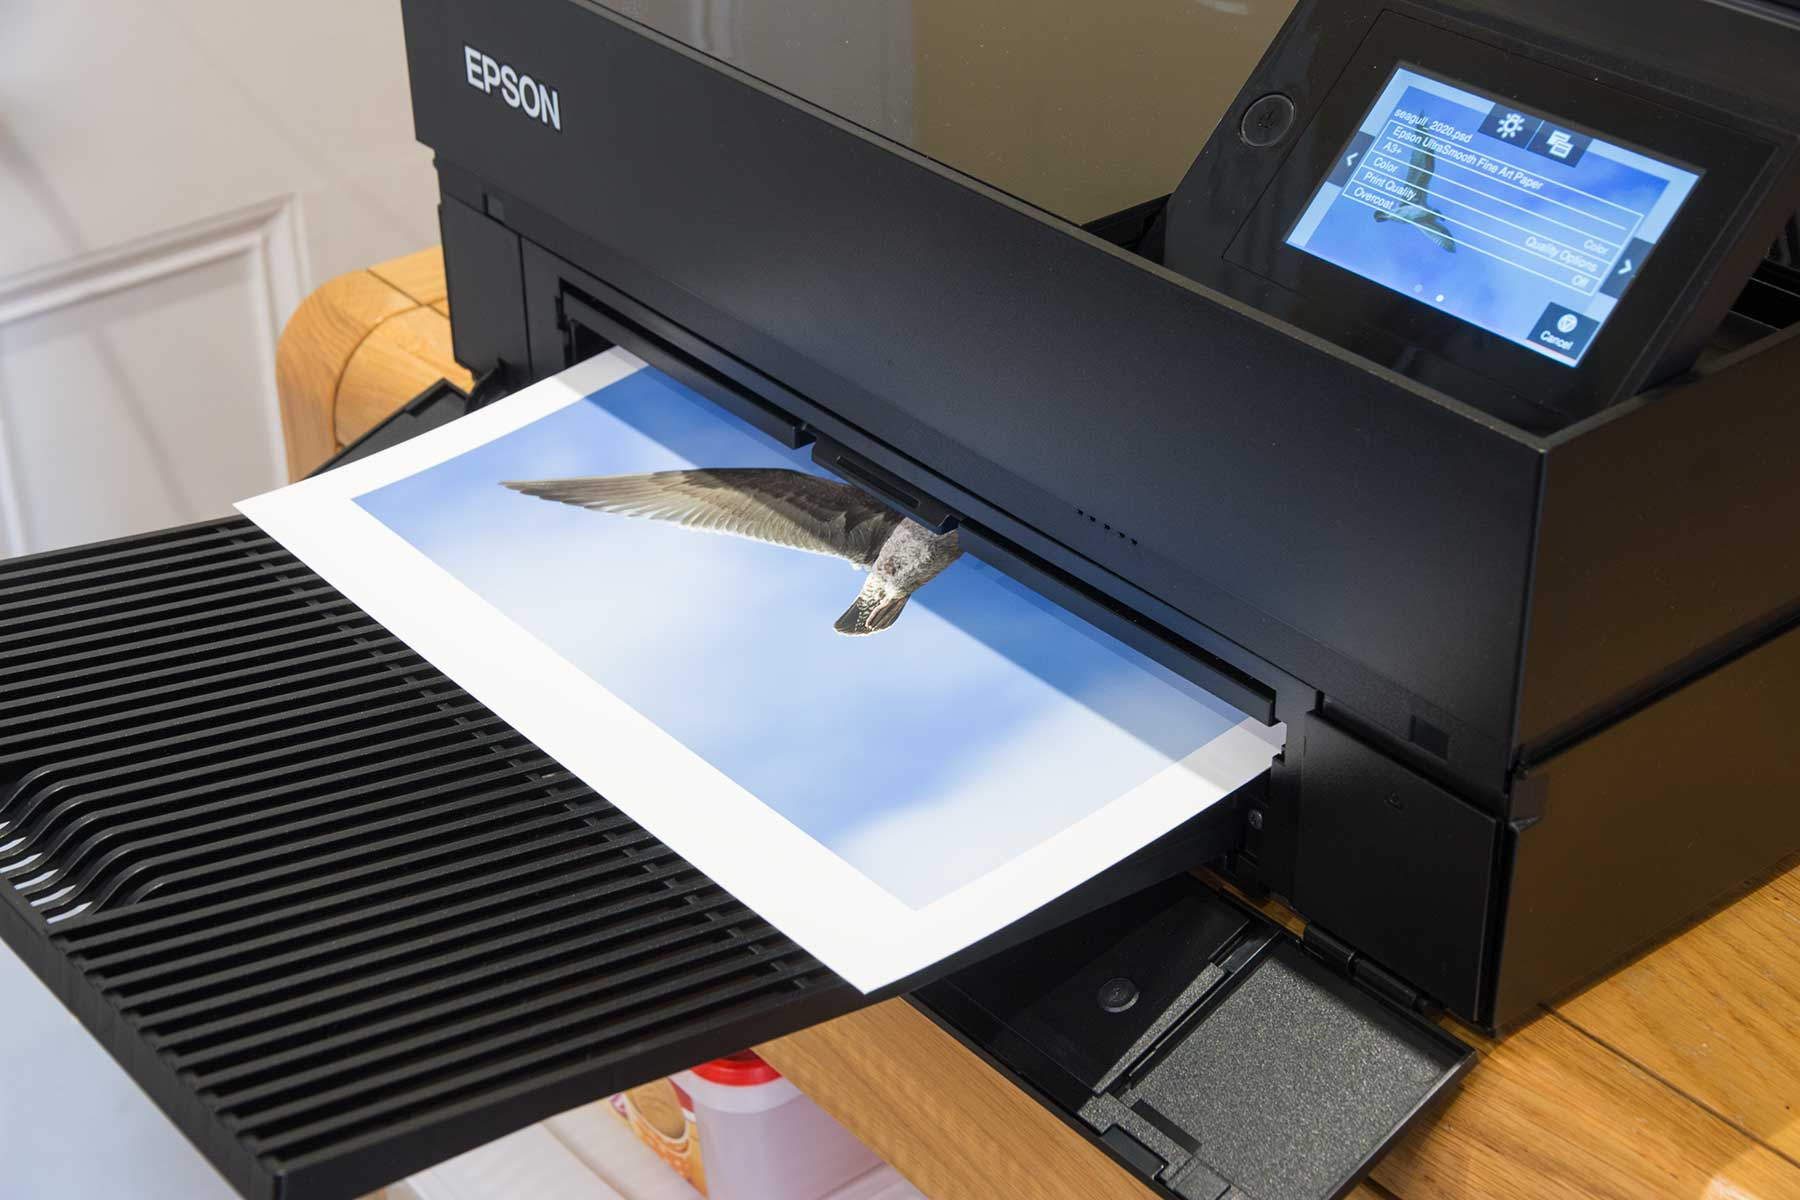 print-coming-out-of-printer